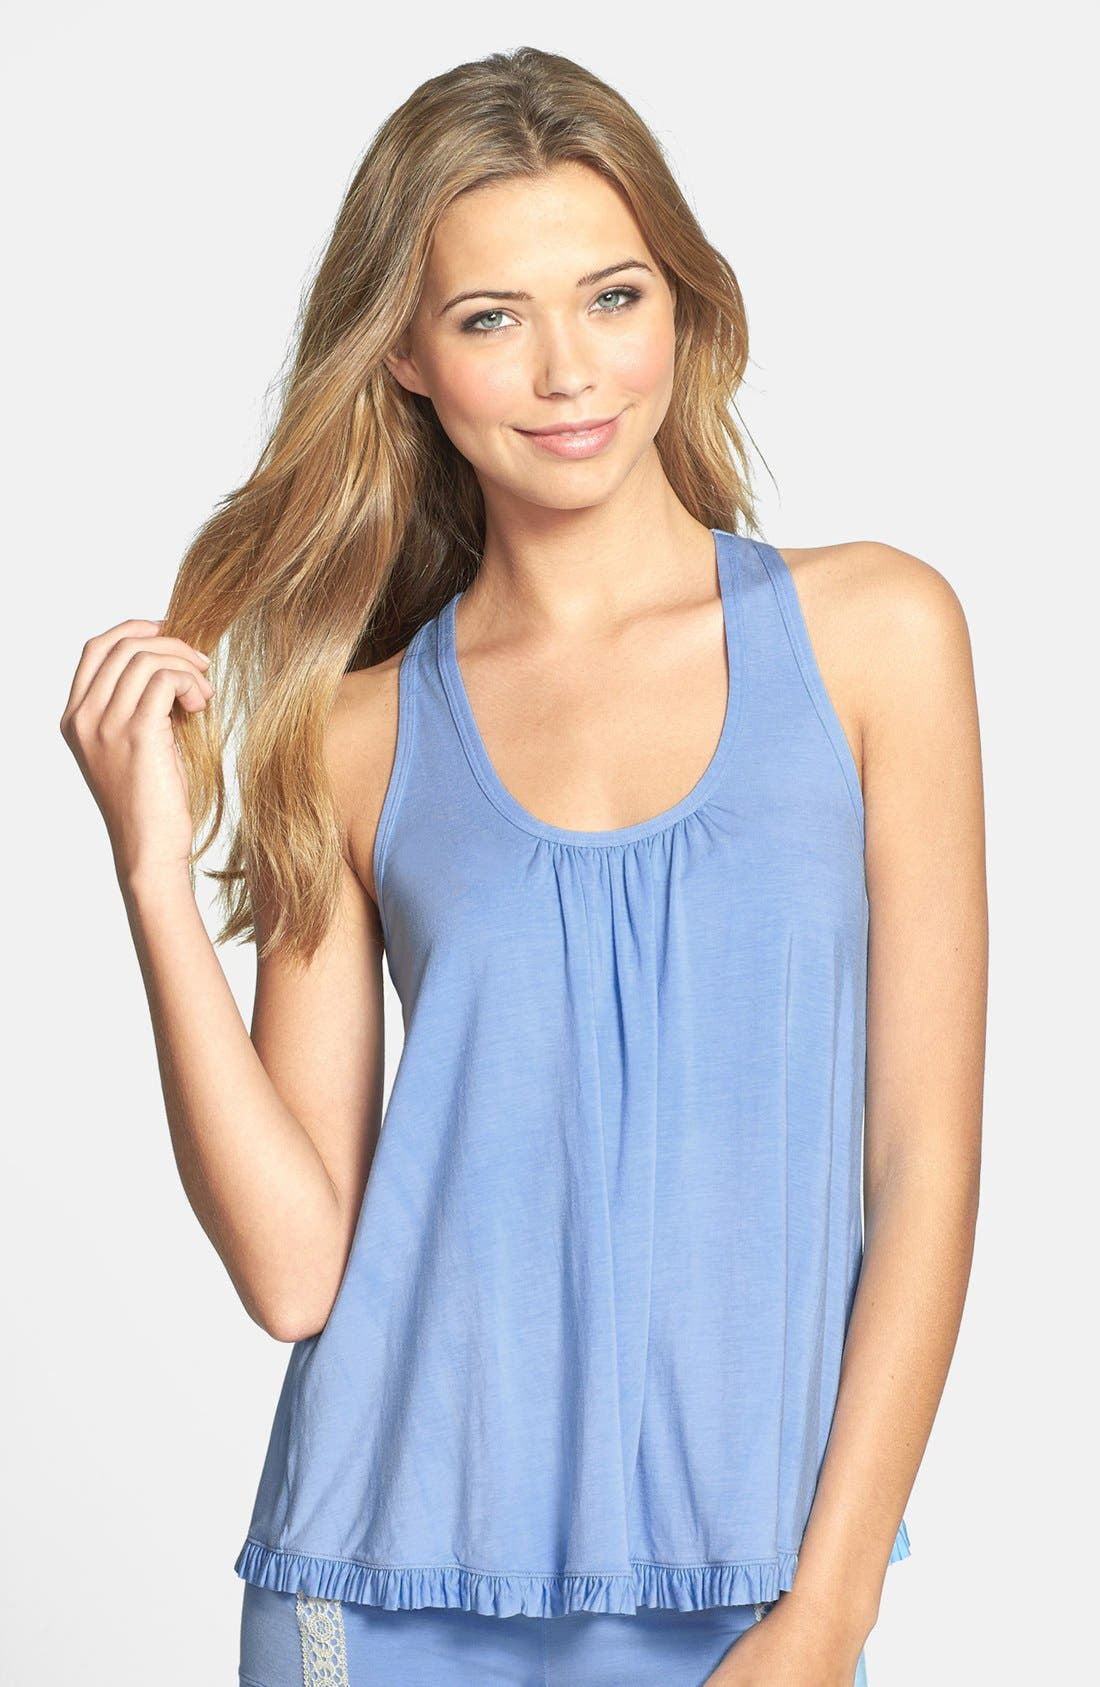 Alternate Image 1 Selected - Underella by Ella Moss 'Bohemian Bliss' Ruffle Trim Racerback Tank